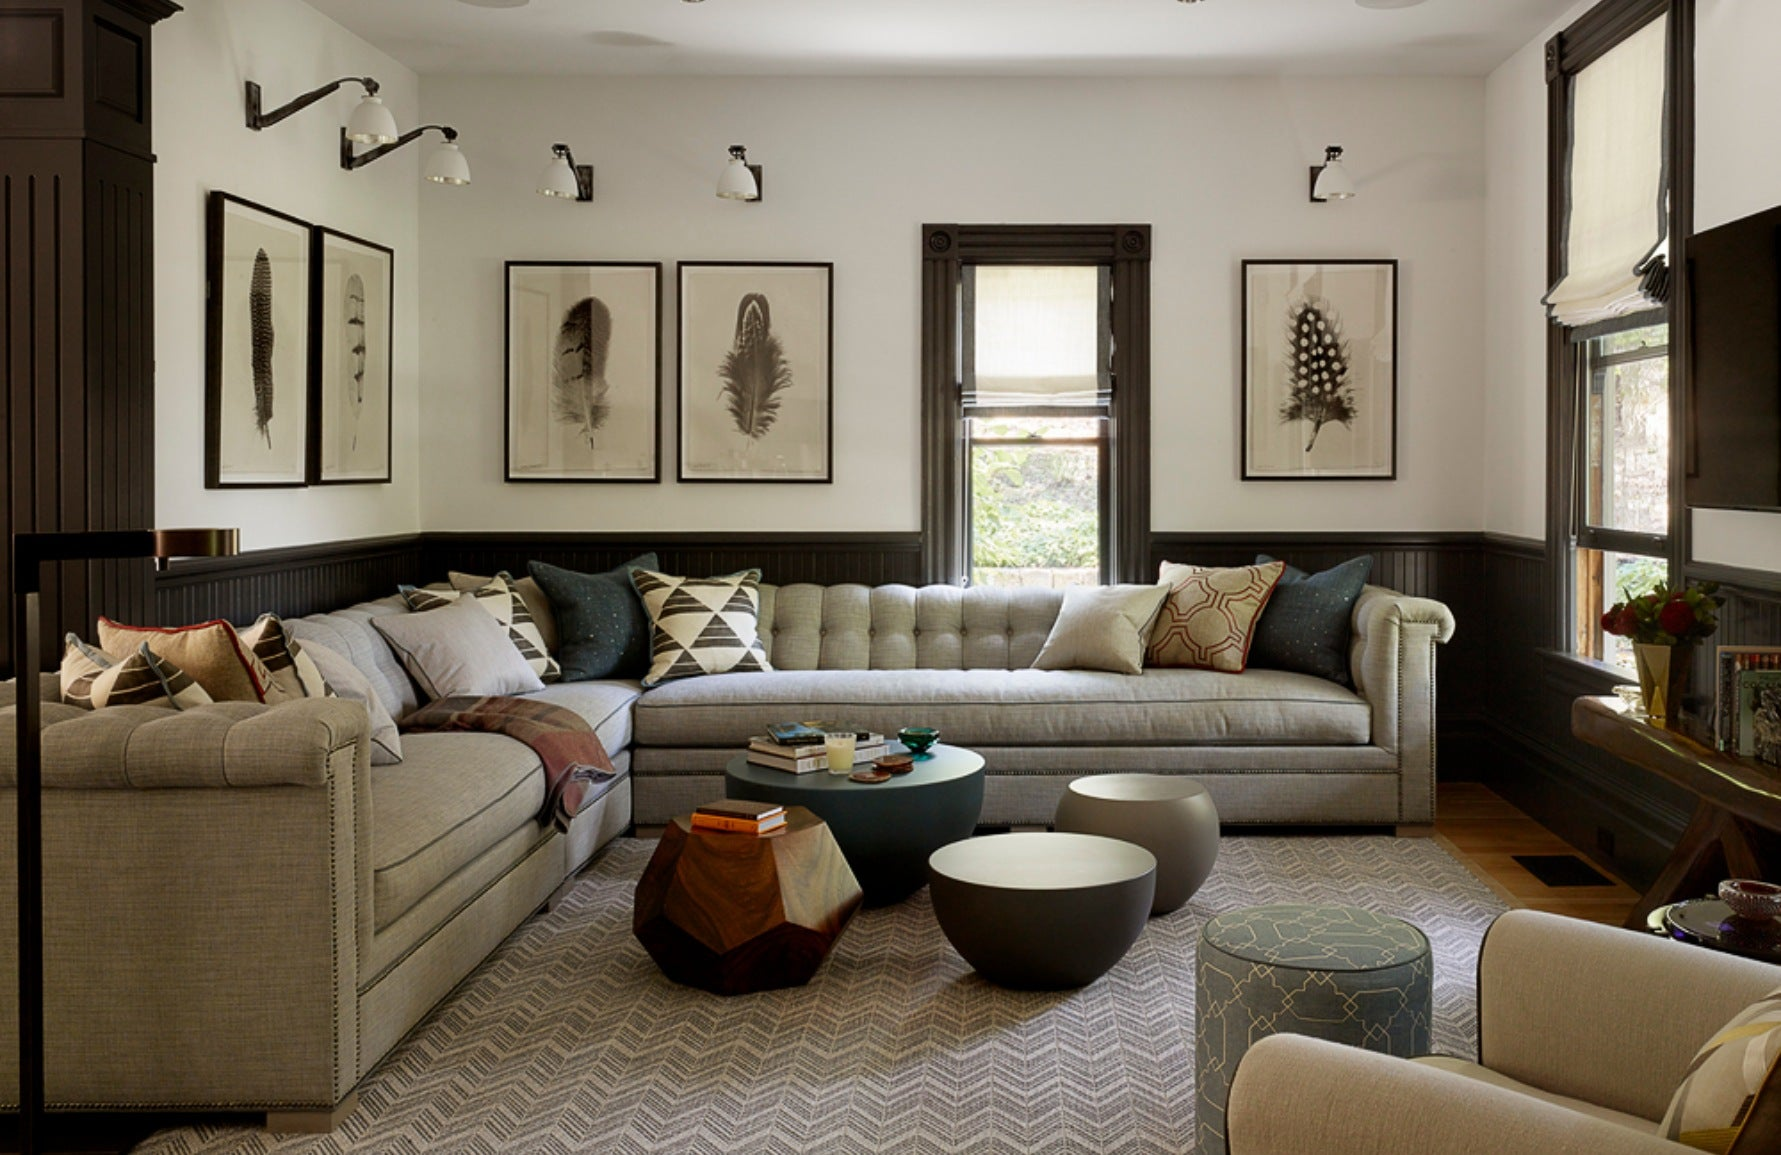 12 Small Living Room Layout & Design Ideas | LuxDeco.com